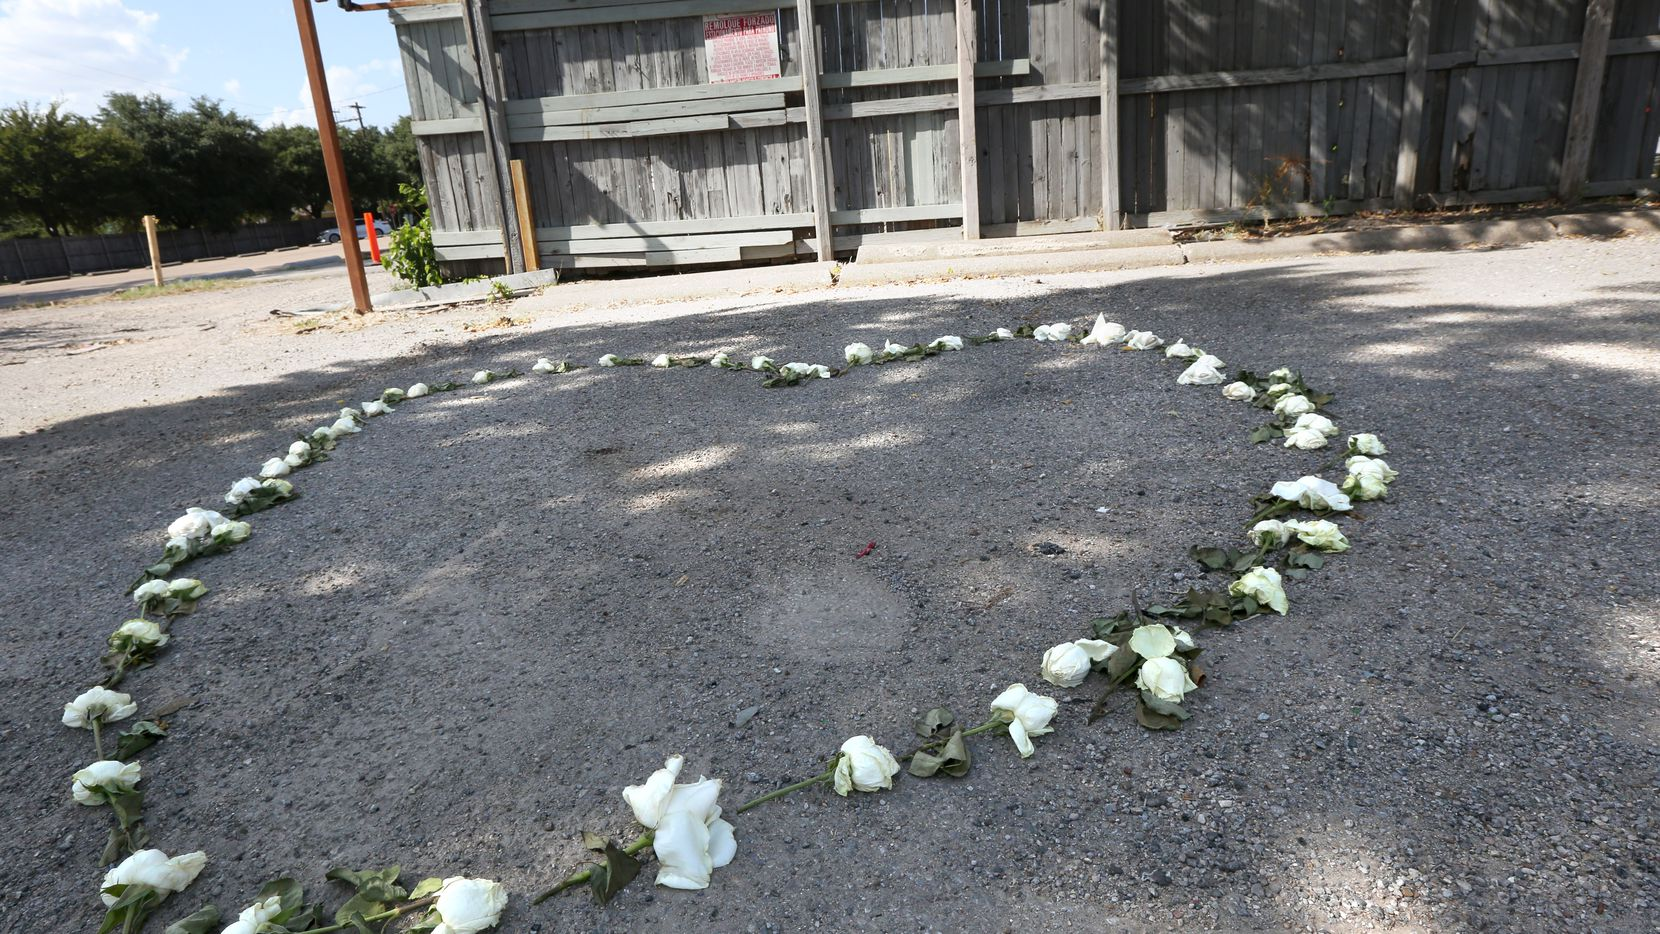 A memorial for Sara Hudson made from roses in the shape of a heart was constructed in a parking lot a few blocks west of Greenville Avenue in Dallas.